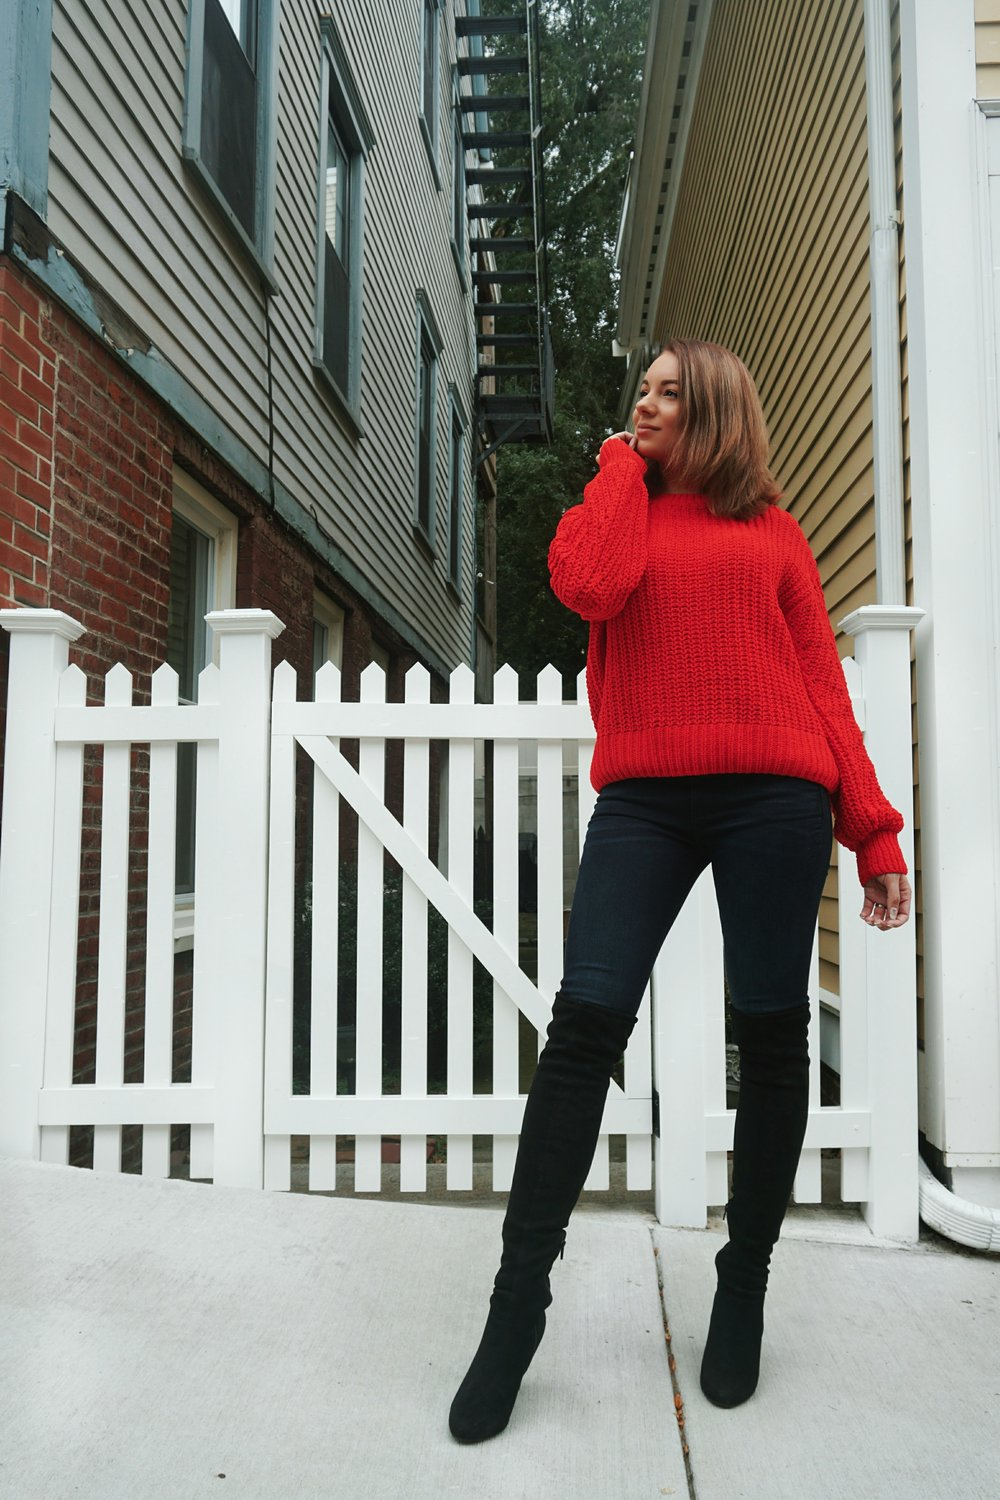 Fall outfit inspiration : red oversized sweater, jeans, and black thigh high boots.